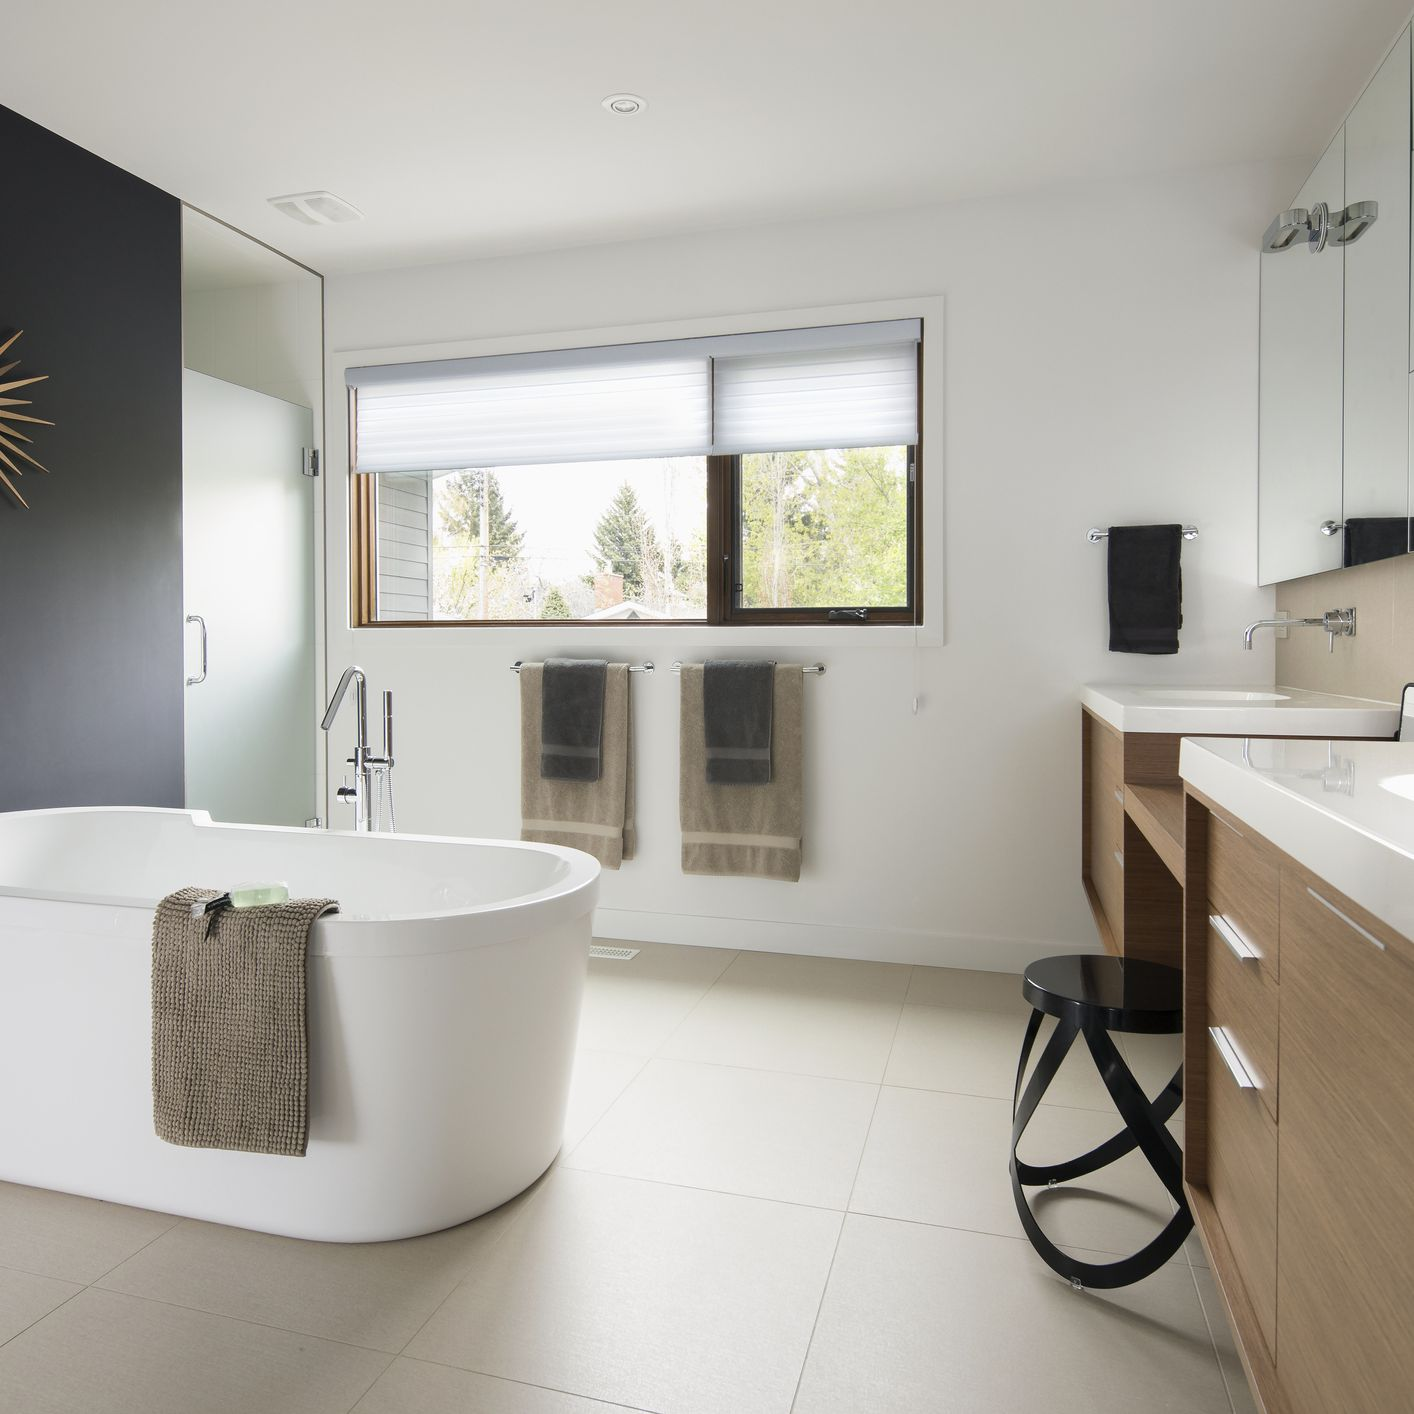 Learning How to Save on Your Next Bathroom Remodel